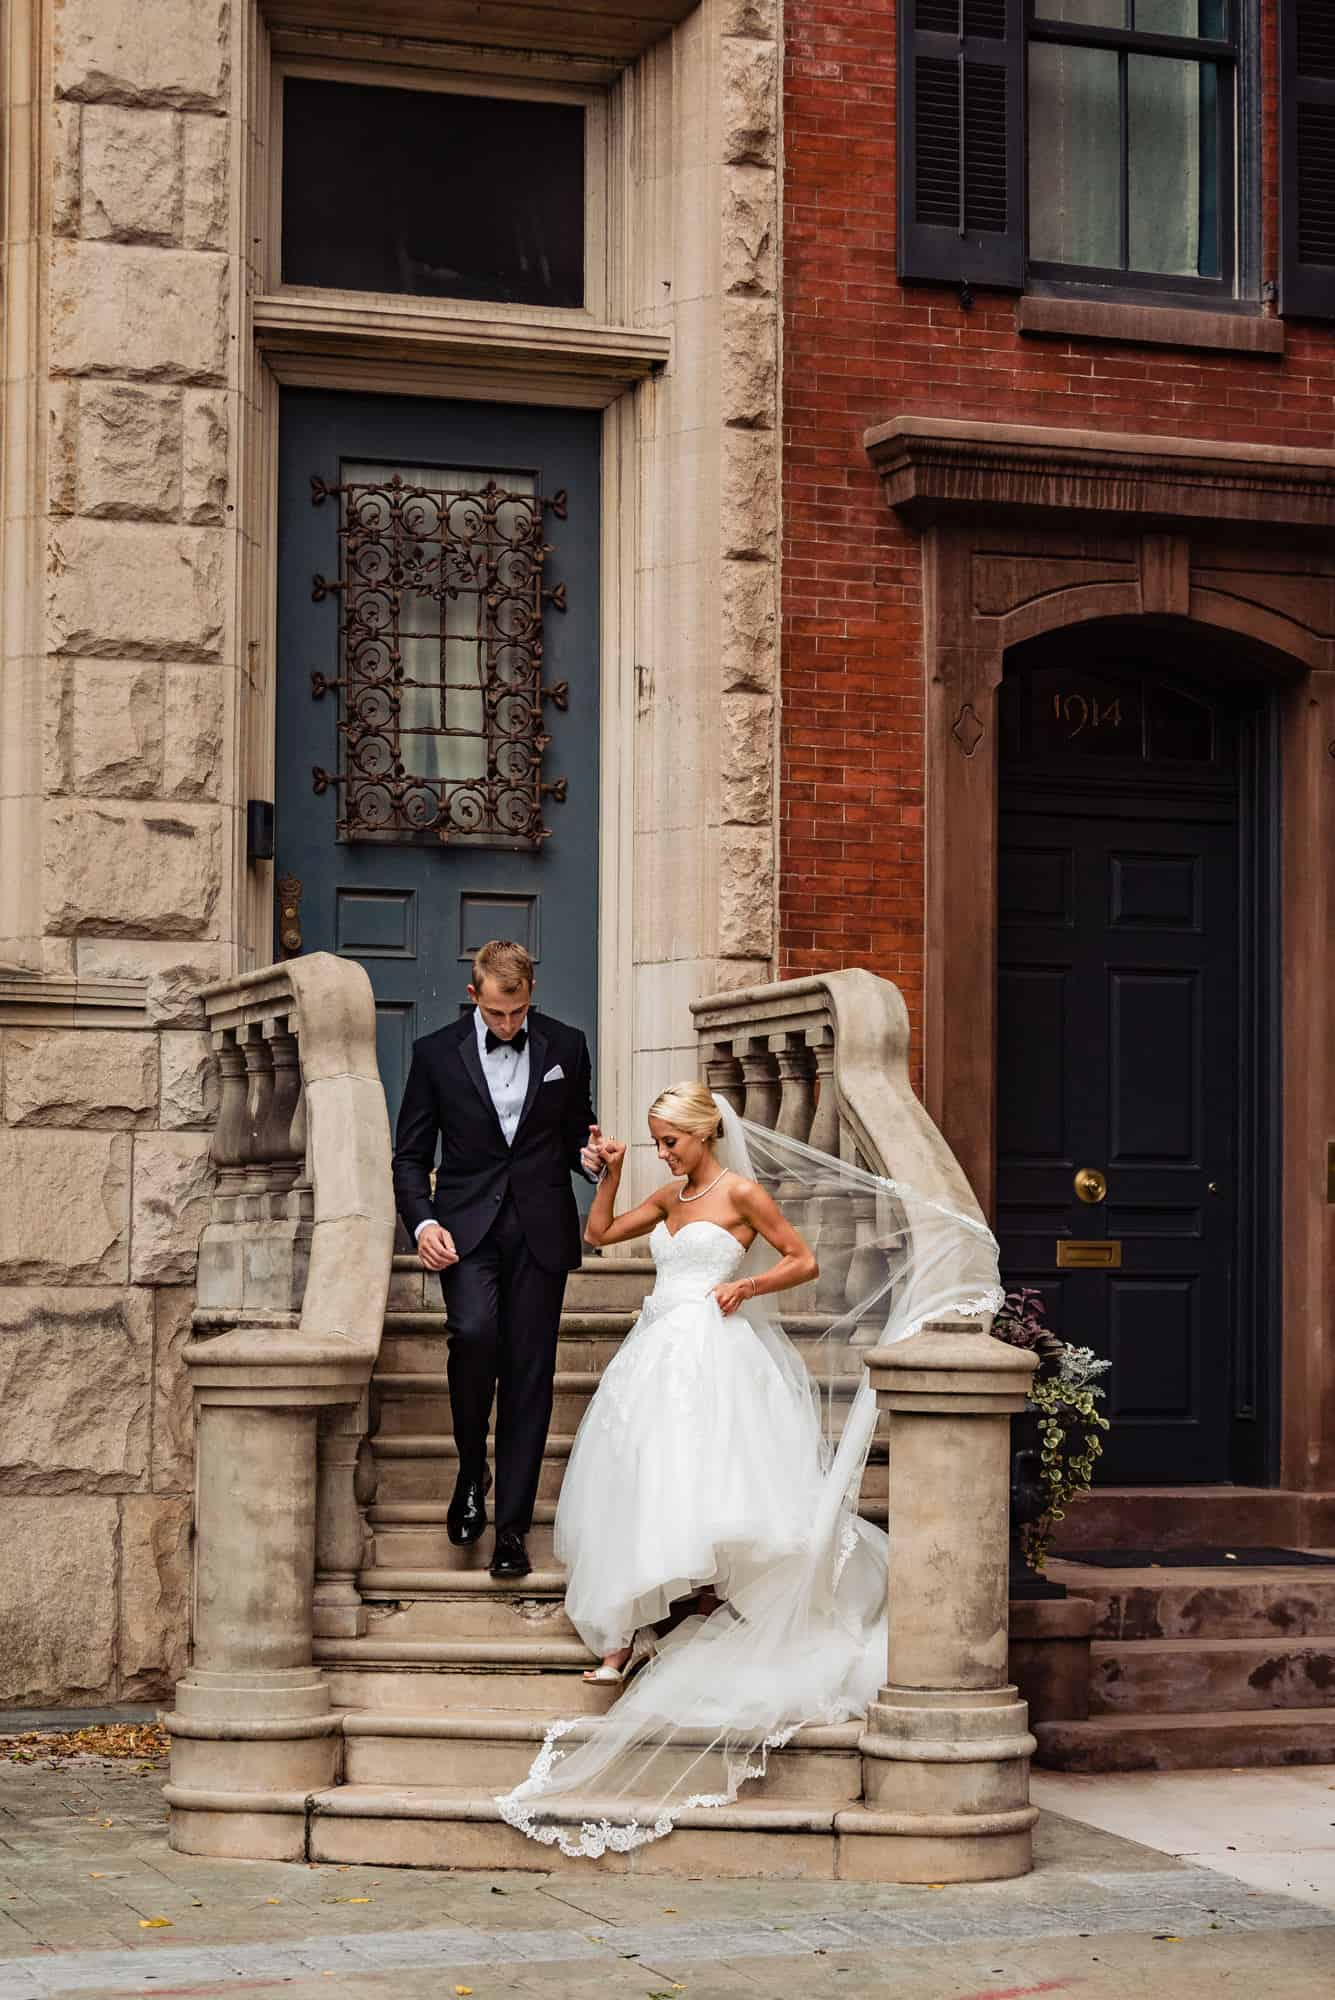 Ritz Carlton Philadelphia Wedding|bride and groom holding hands walking down stairs